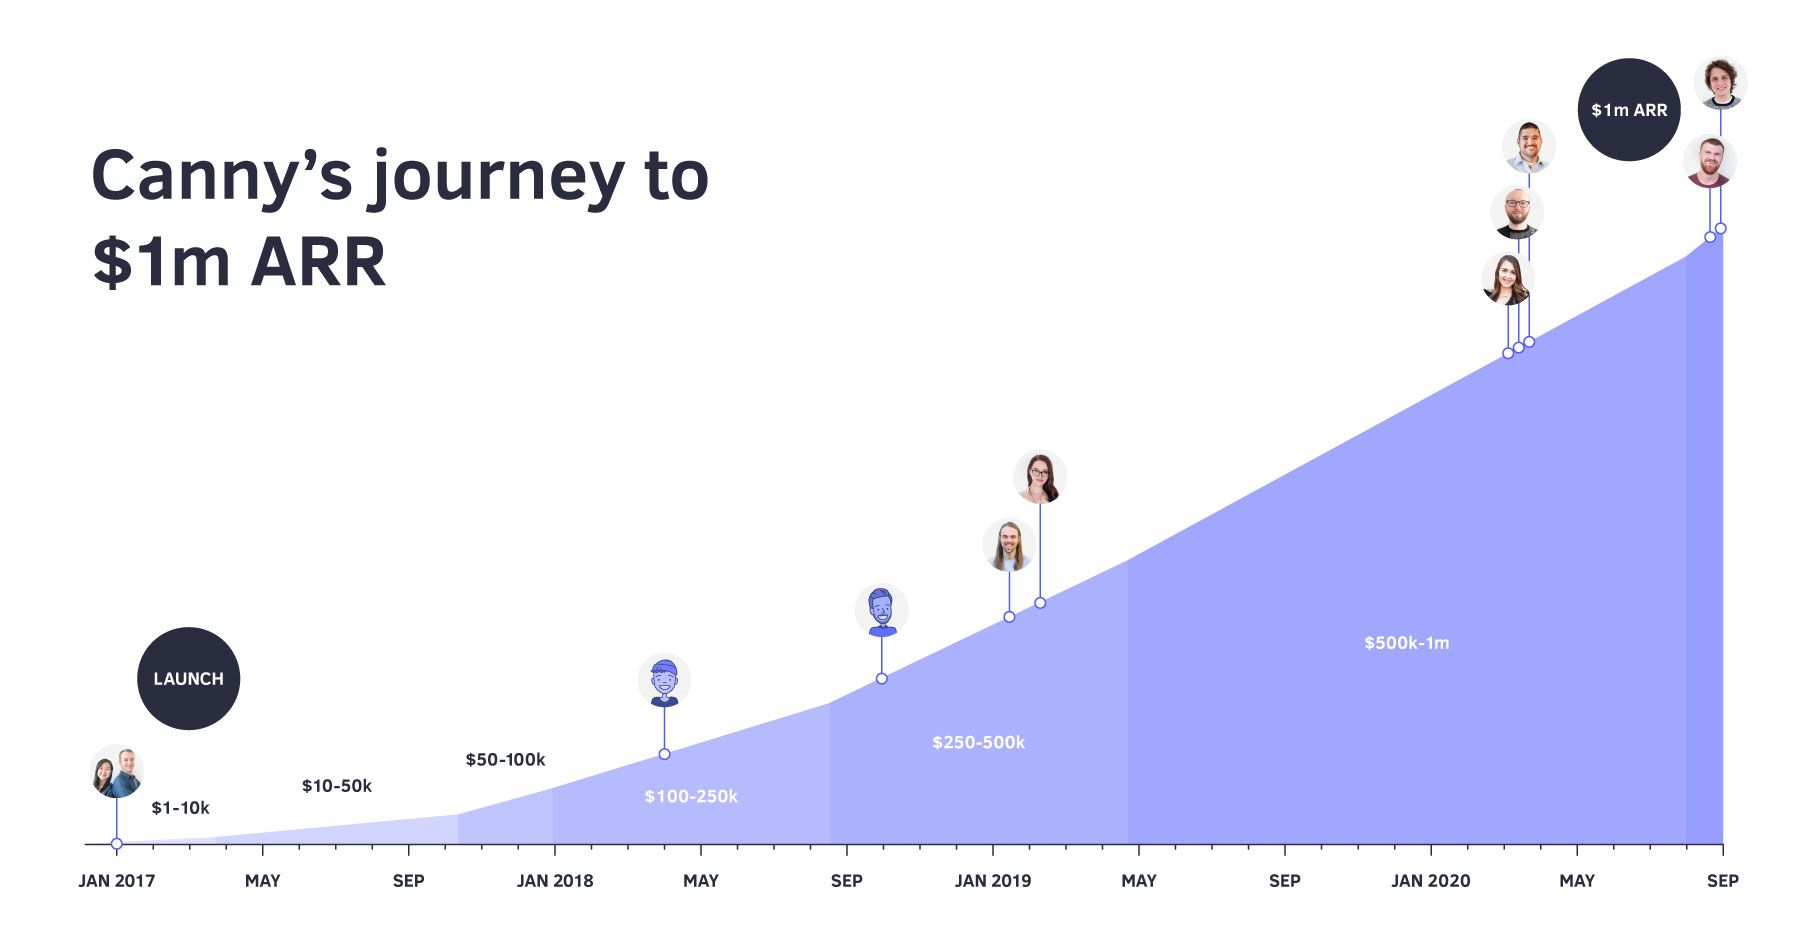 Canny's journey to $1m ARR